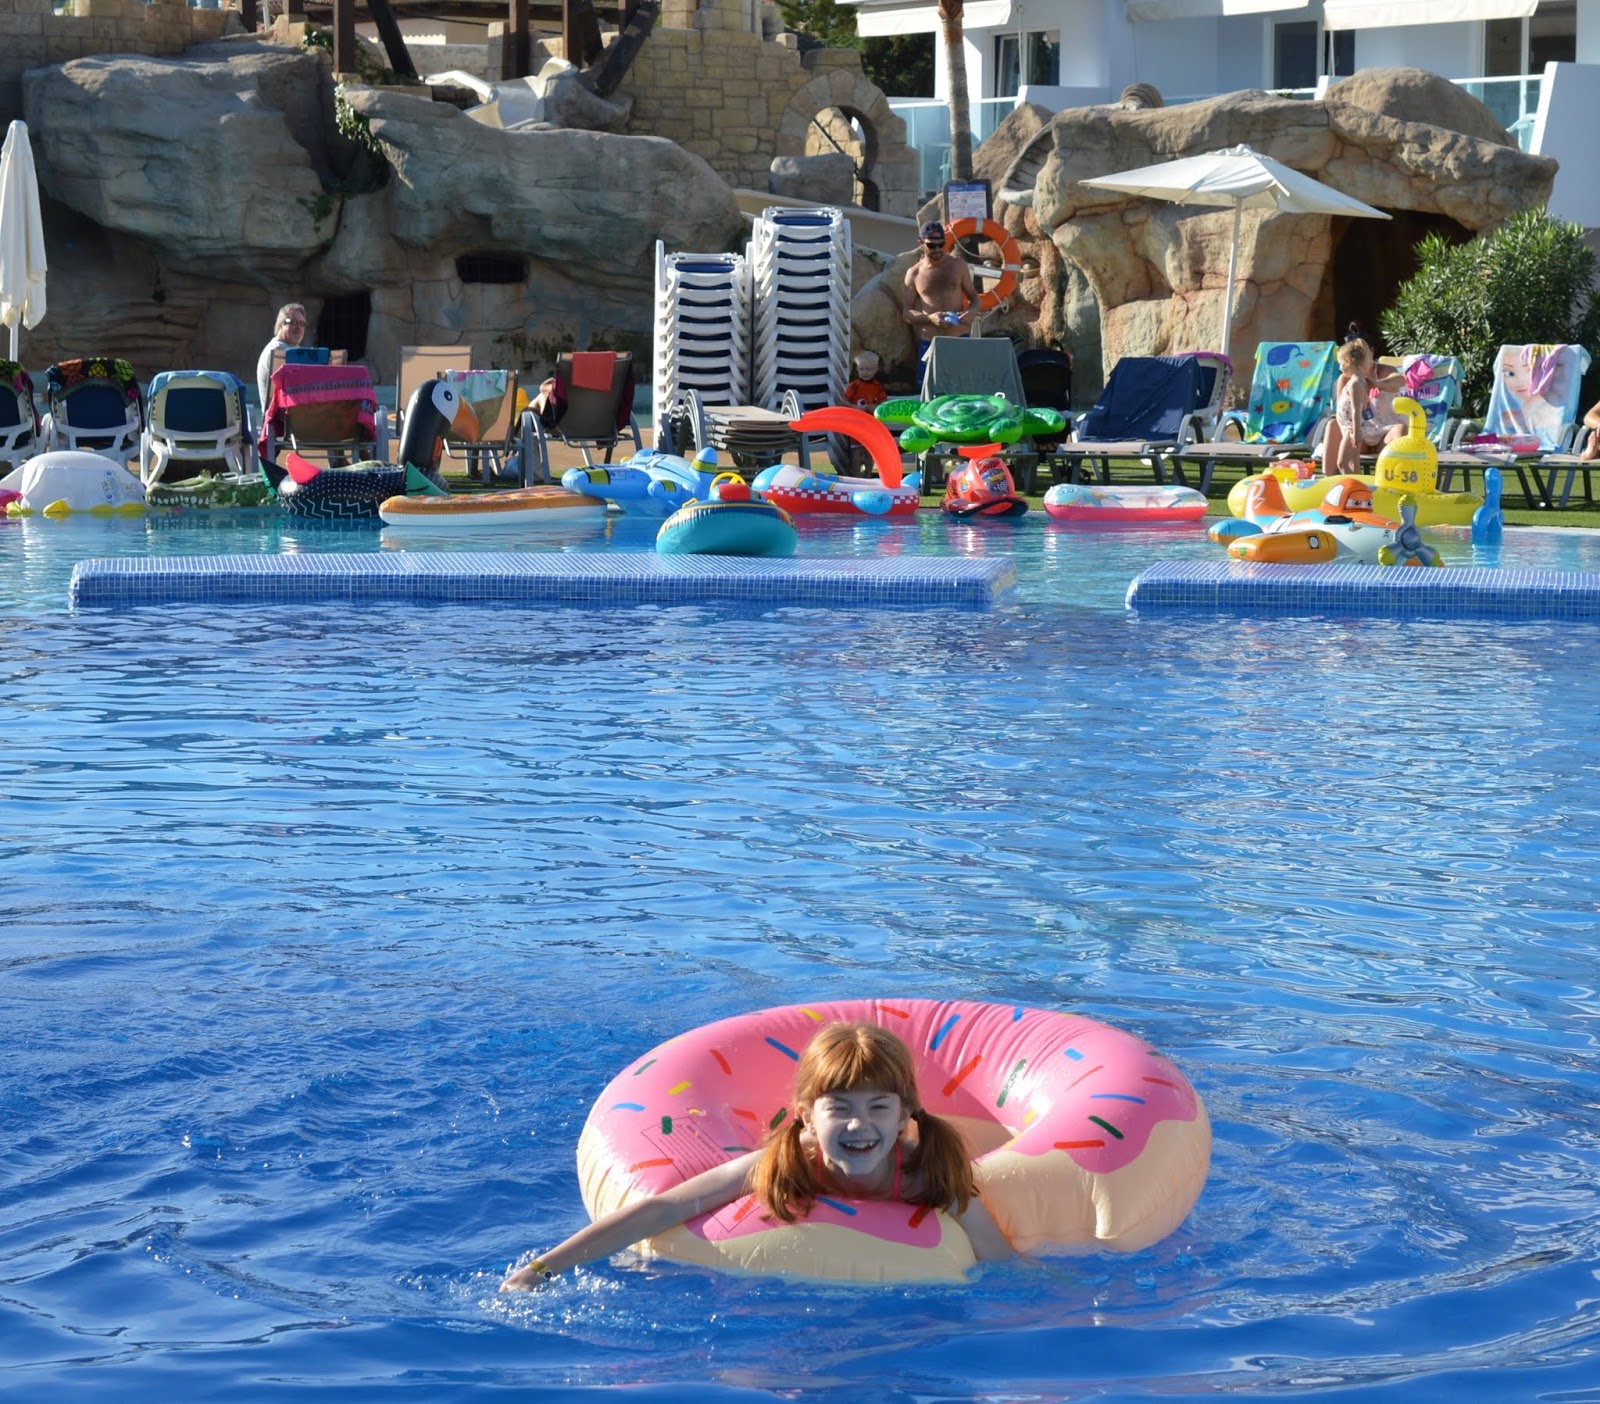 Pirate Swimming Pools and Mermaid Lessons at Pirates Village, Majorca - 2m deep pool